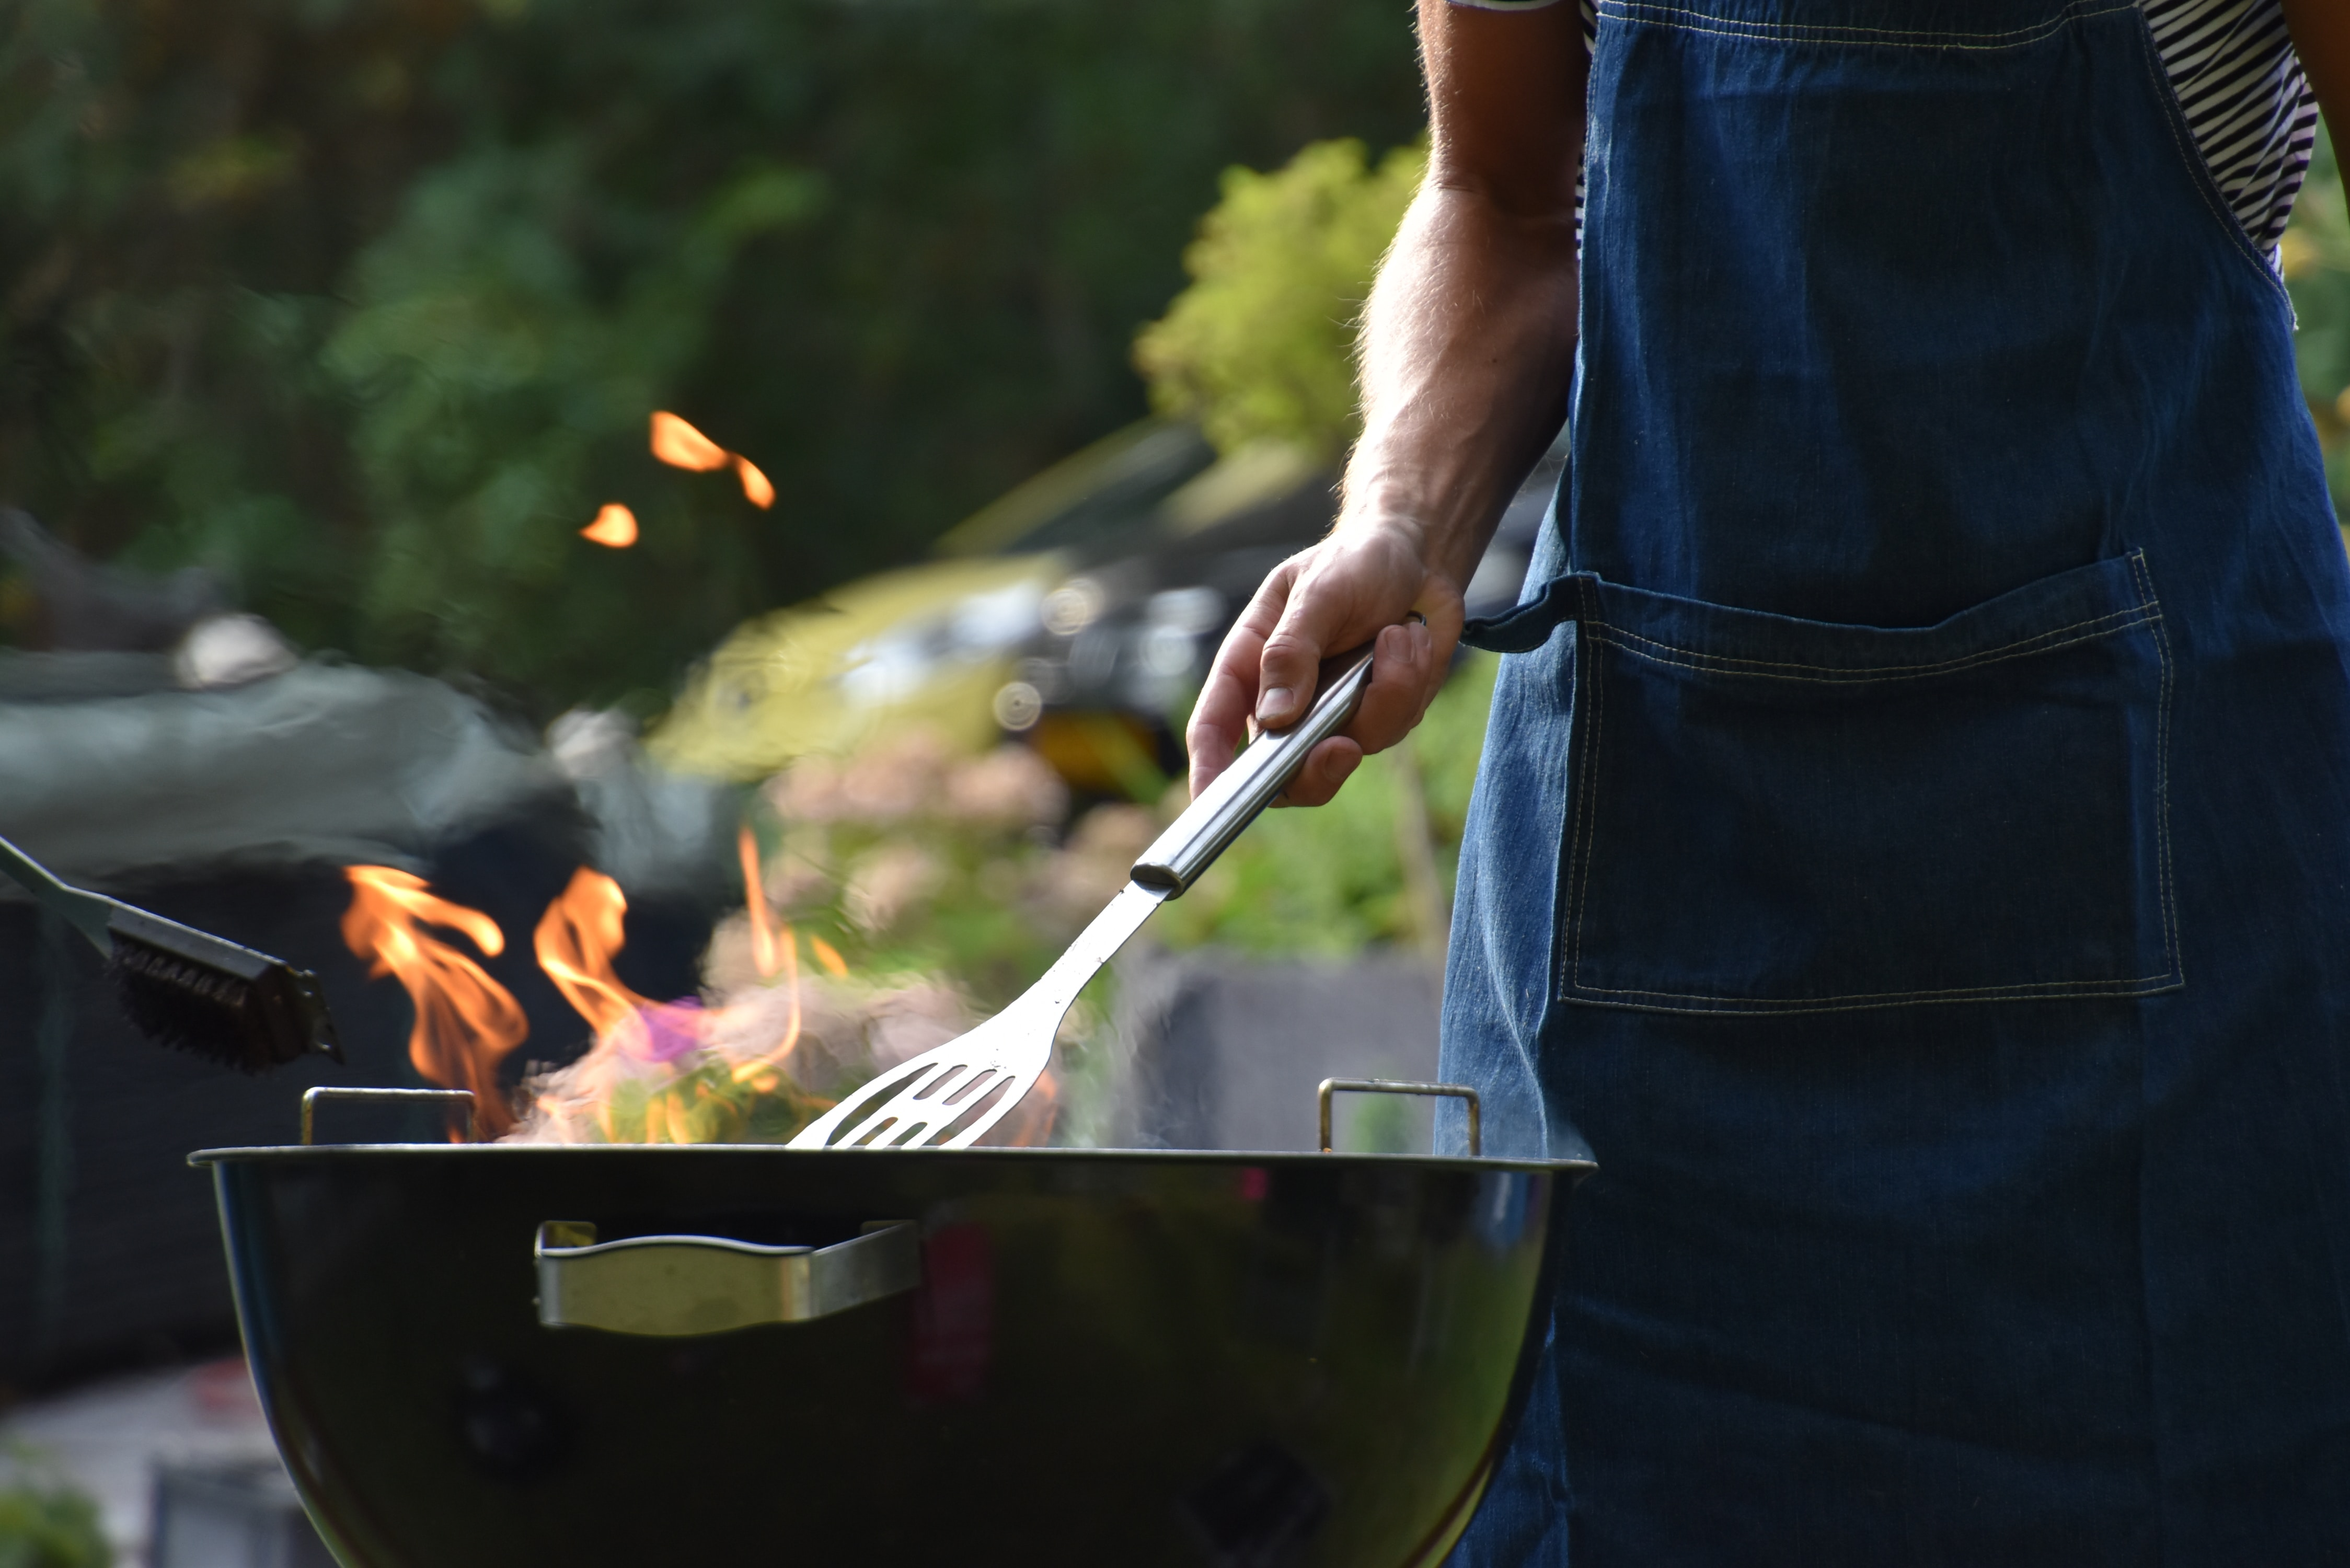 Barbecue Rather Than Bake or Fry Your Turkey